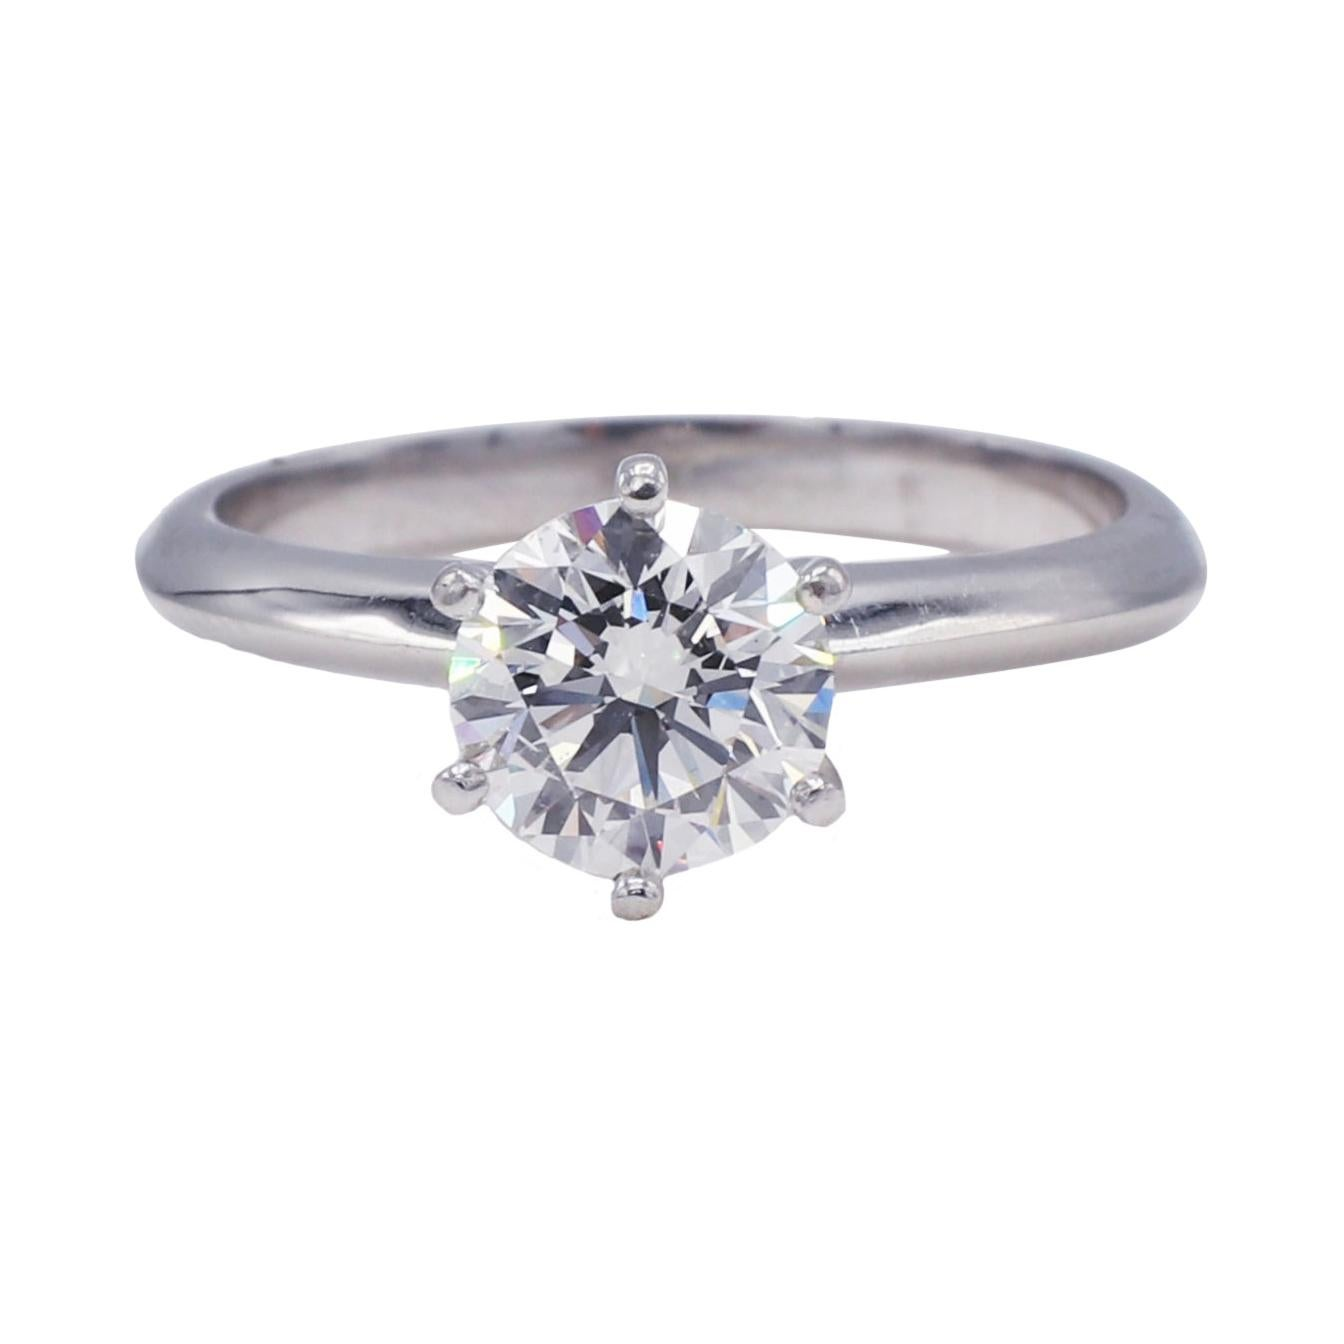 GIA Certified 1.32 F SI1 Round Diamond Platinum Solitaire Engagement Ring